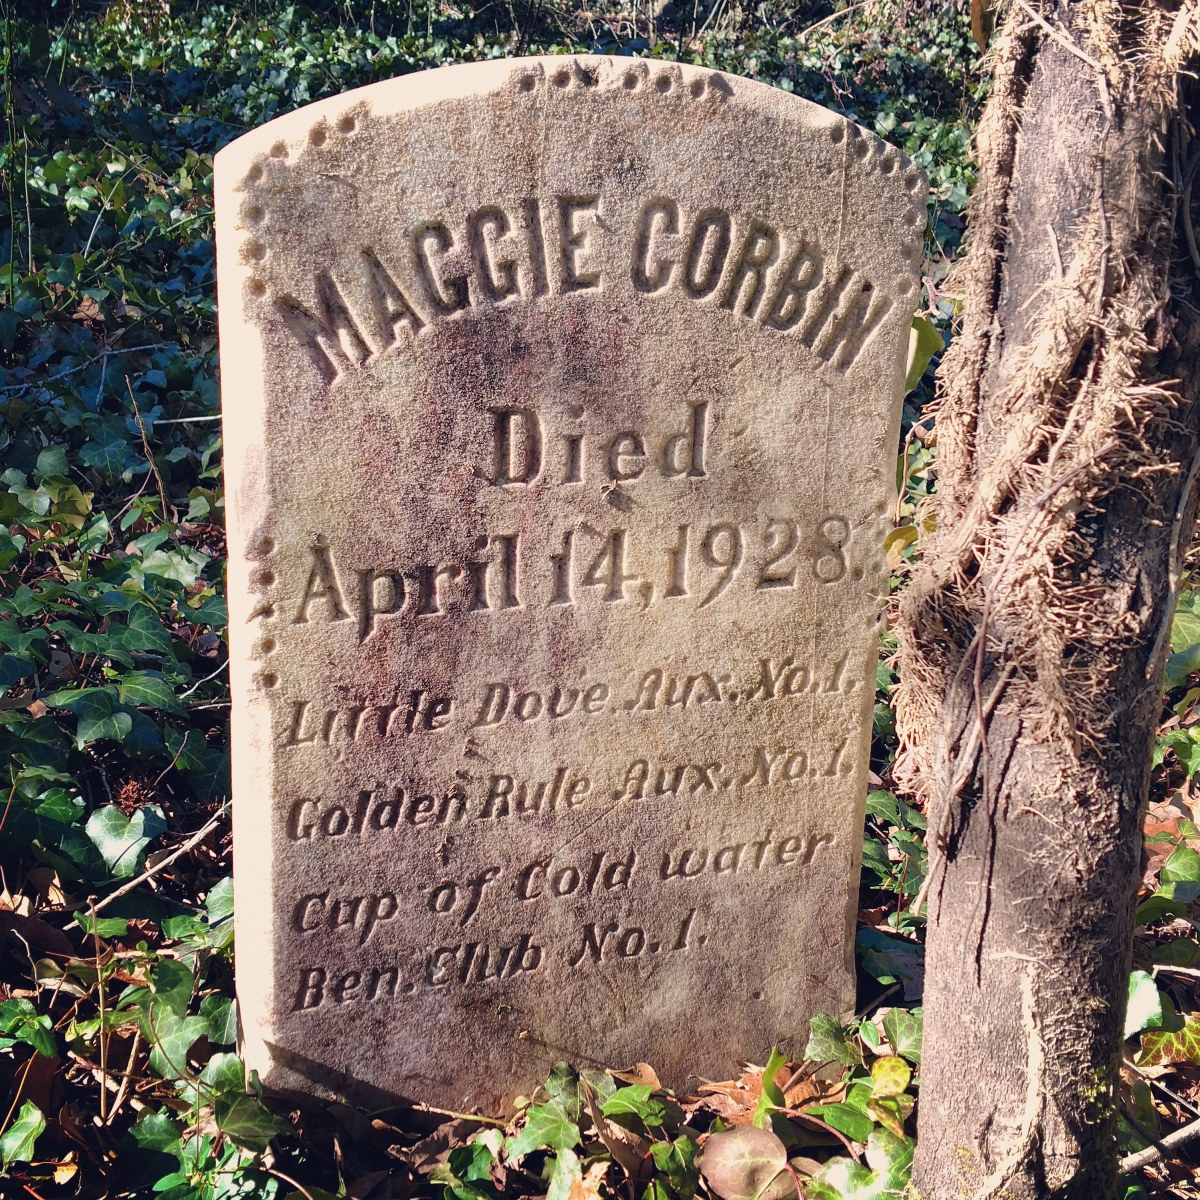 Richmond, Virginia: The gravestone of Maggie Corbin, Evergreen Cemetery